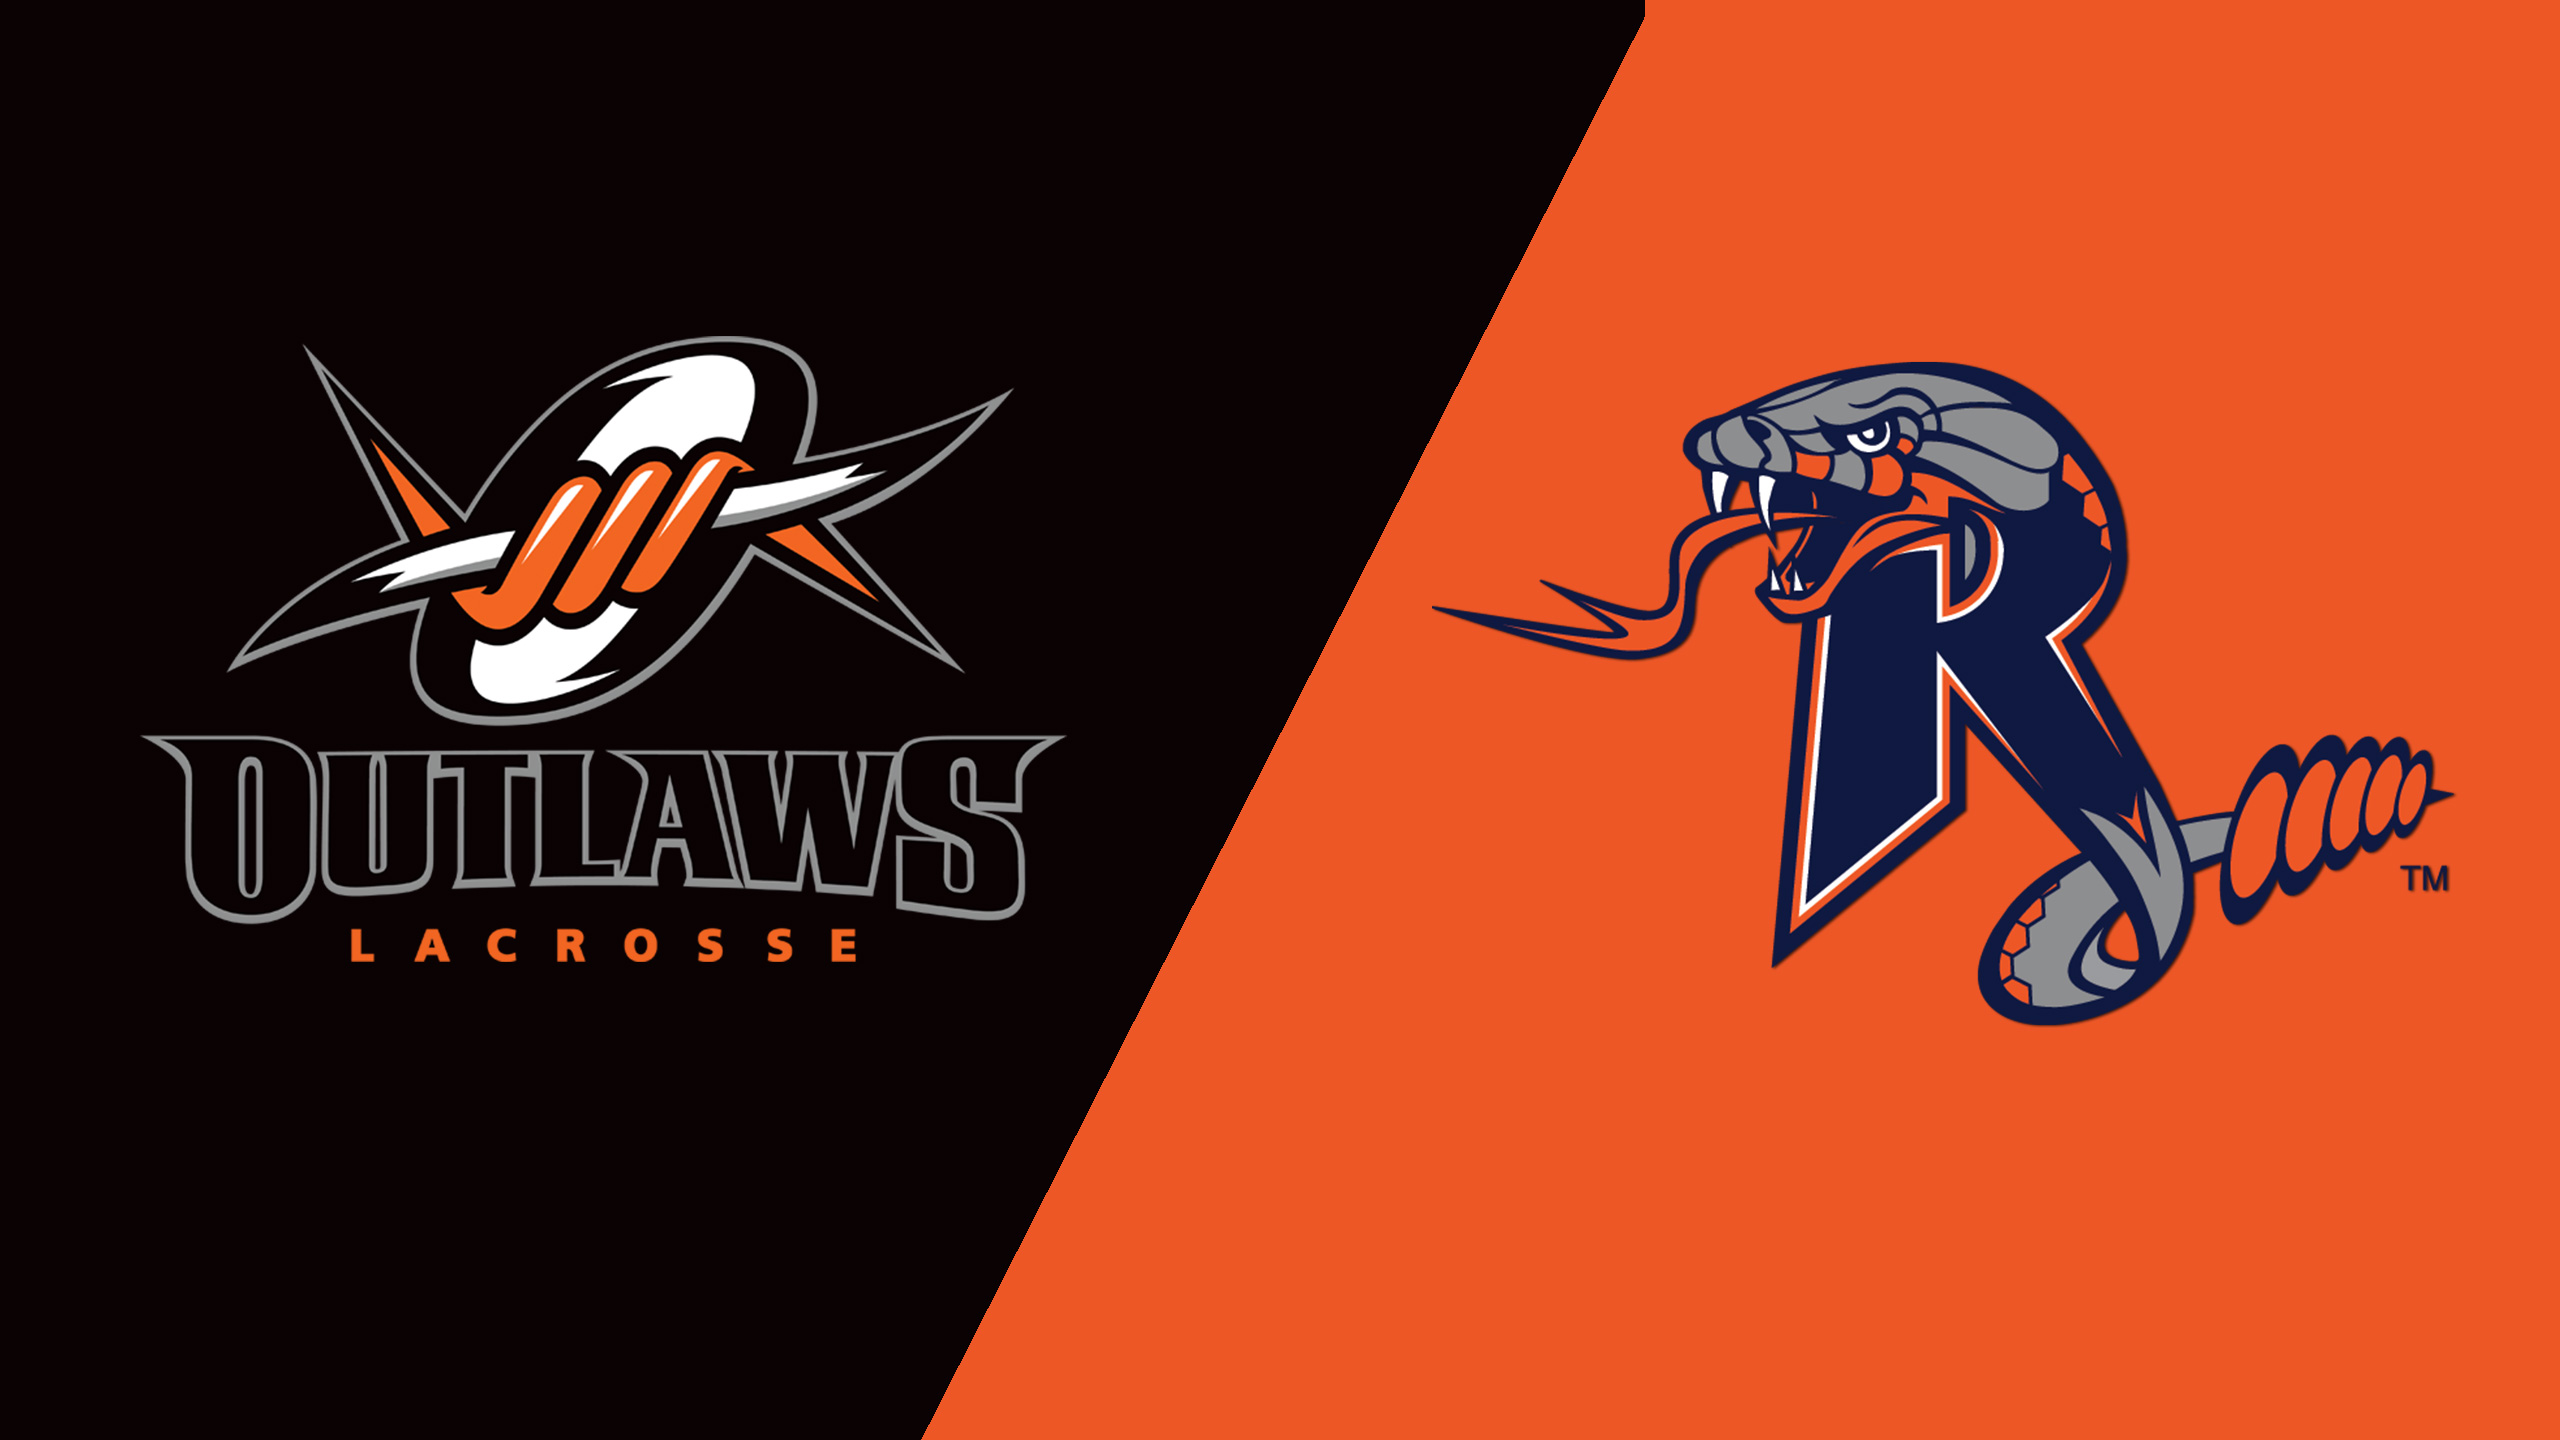 Denver Outlaws vs. Dallas Rattlers (Championship) (Major League Lacrosse)